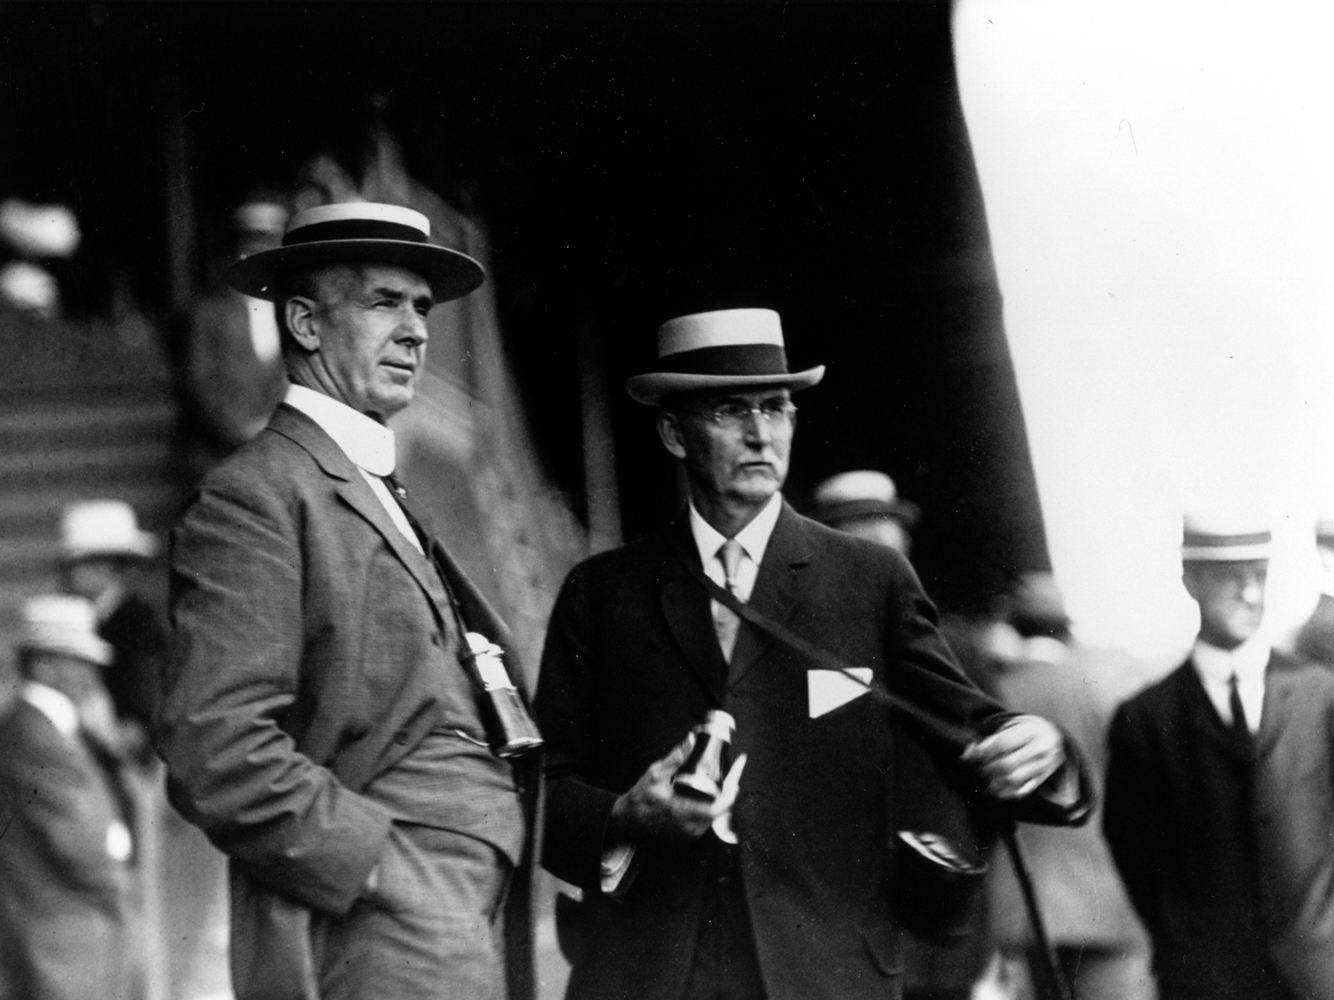 William P. Burch (on right) with an unidentified man (Keeneland Library Cook Collection/Museum Collection)